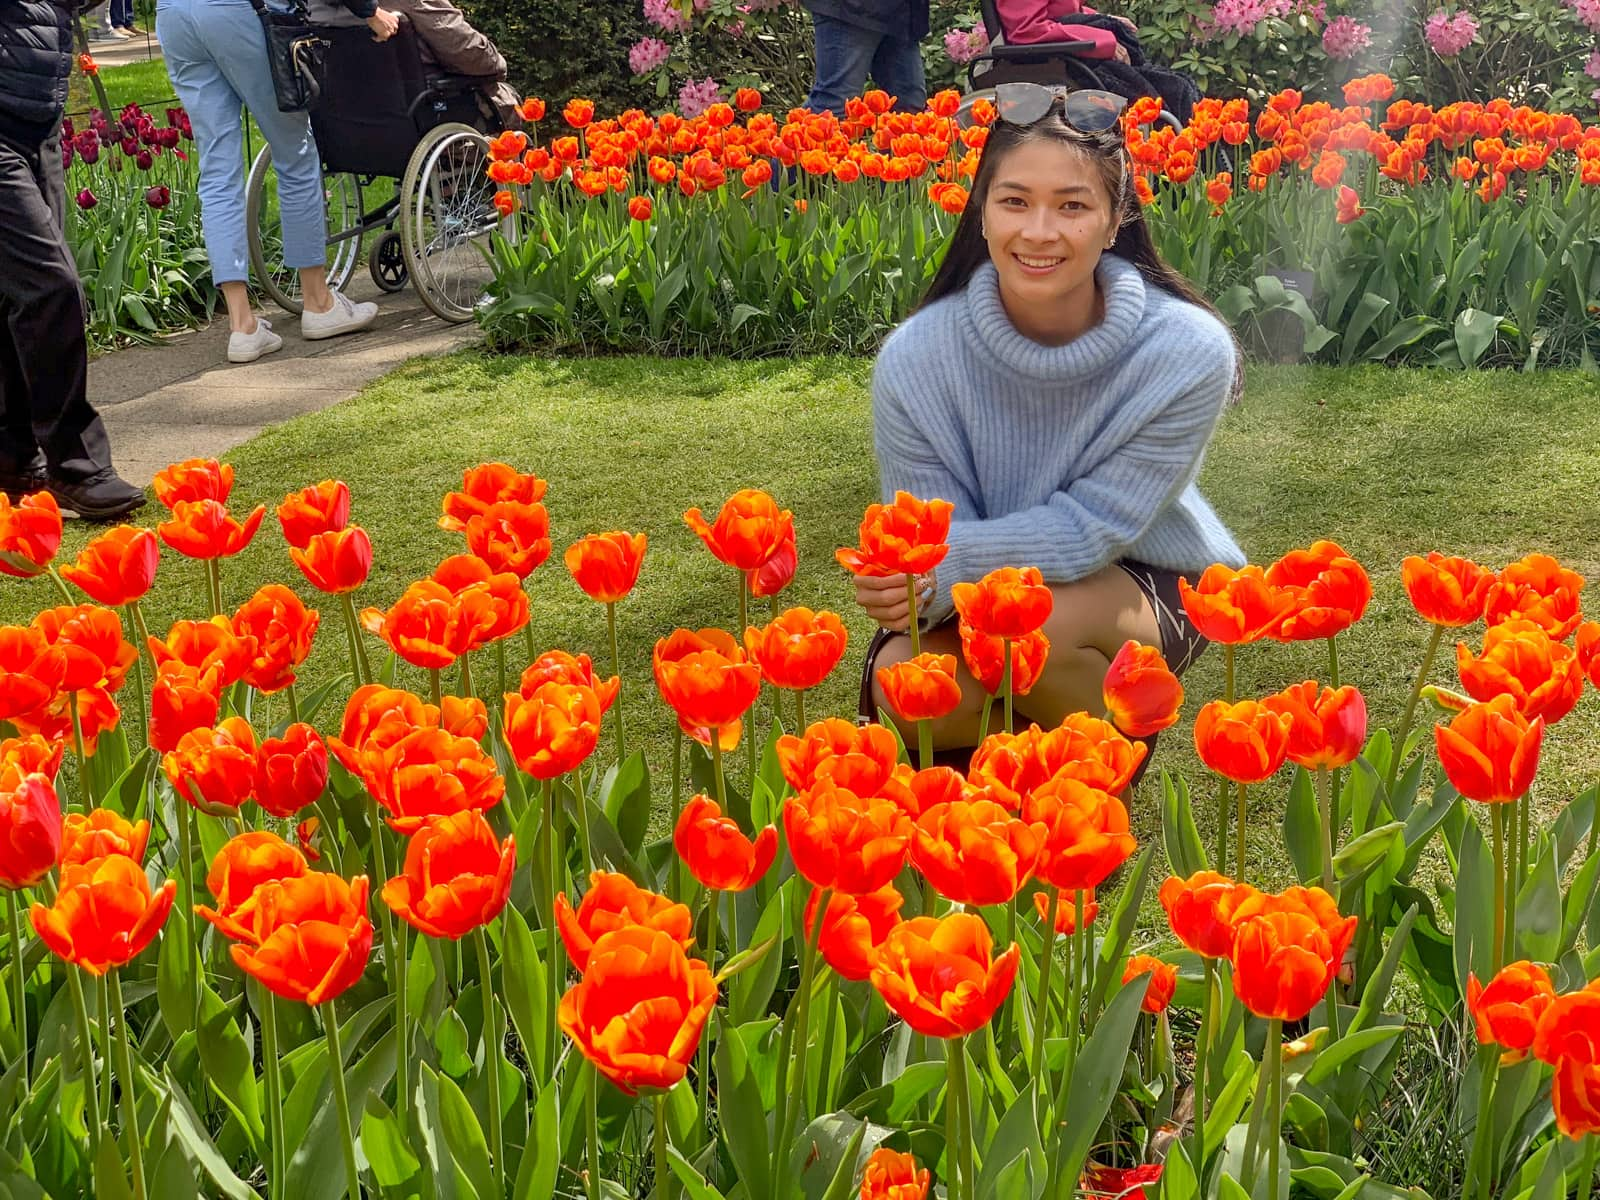 A woman wearing a blue sweater crouching behind several rows of planted orange tulips.